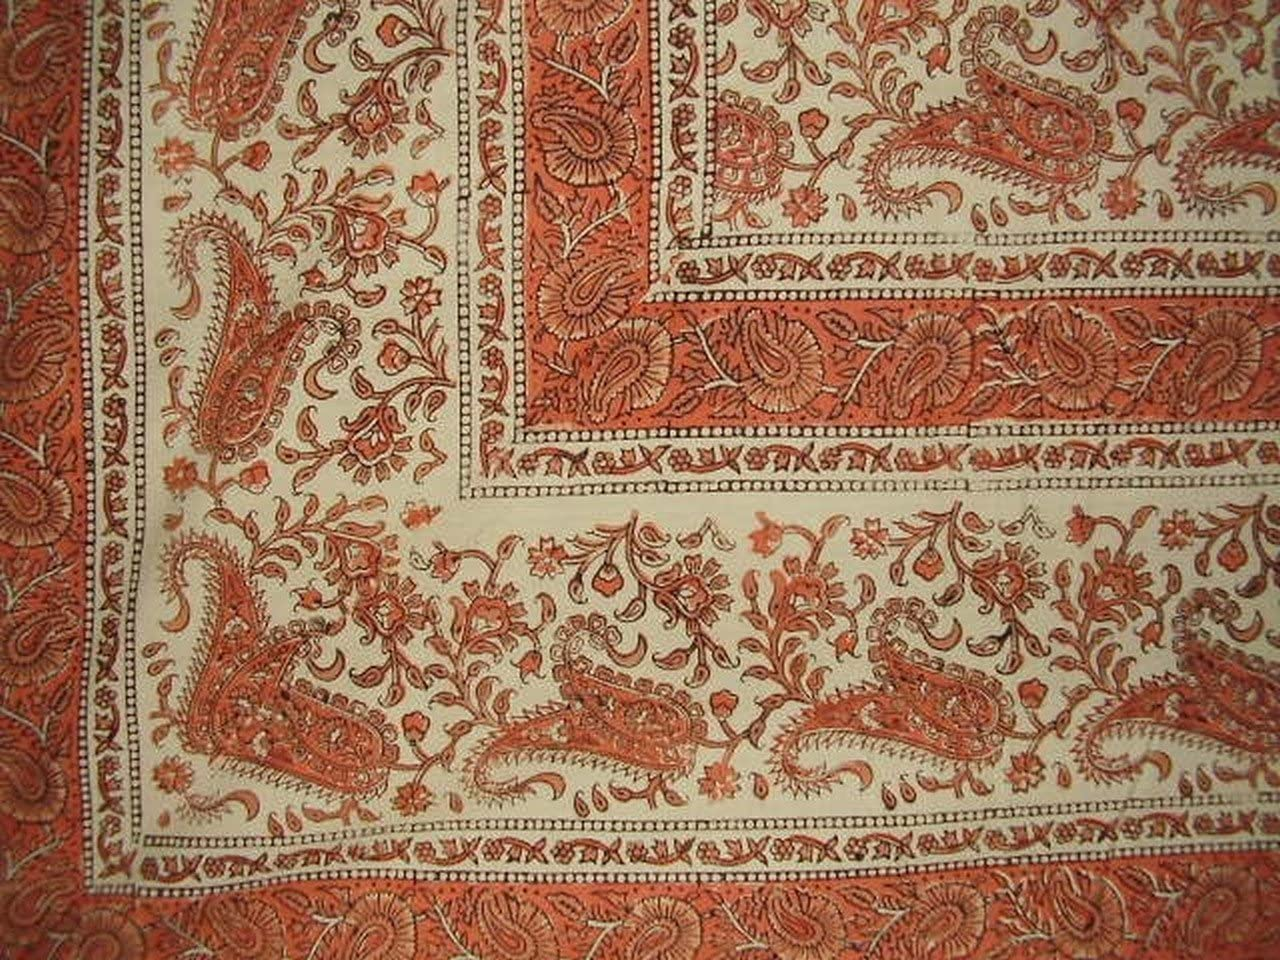 Rajasthan Block Print Paisley Tapestry Cotton Spread 104